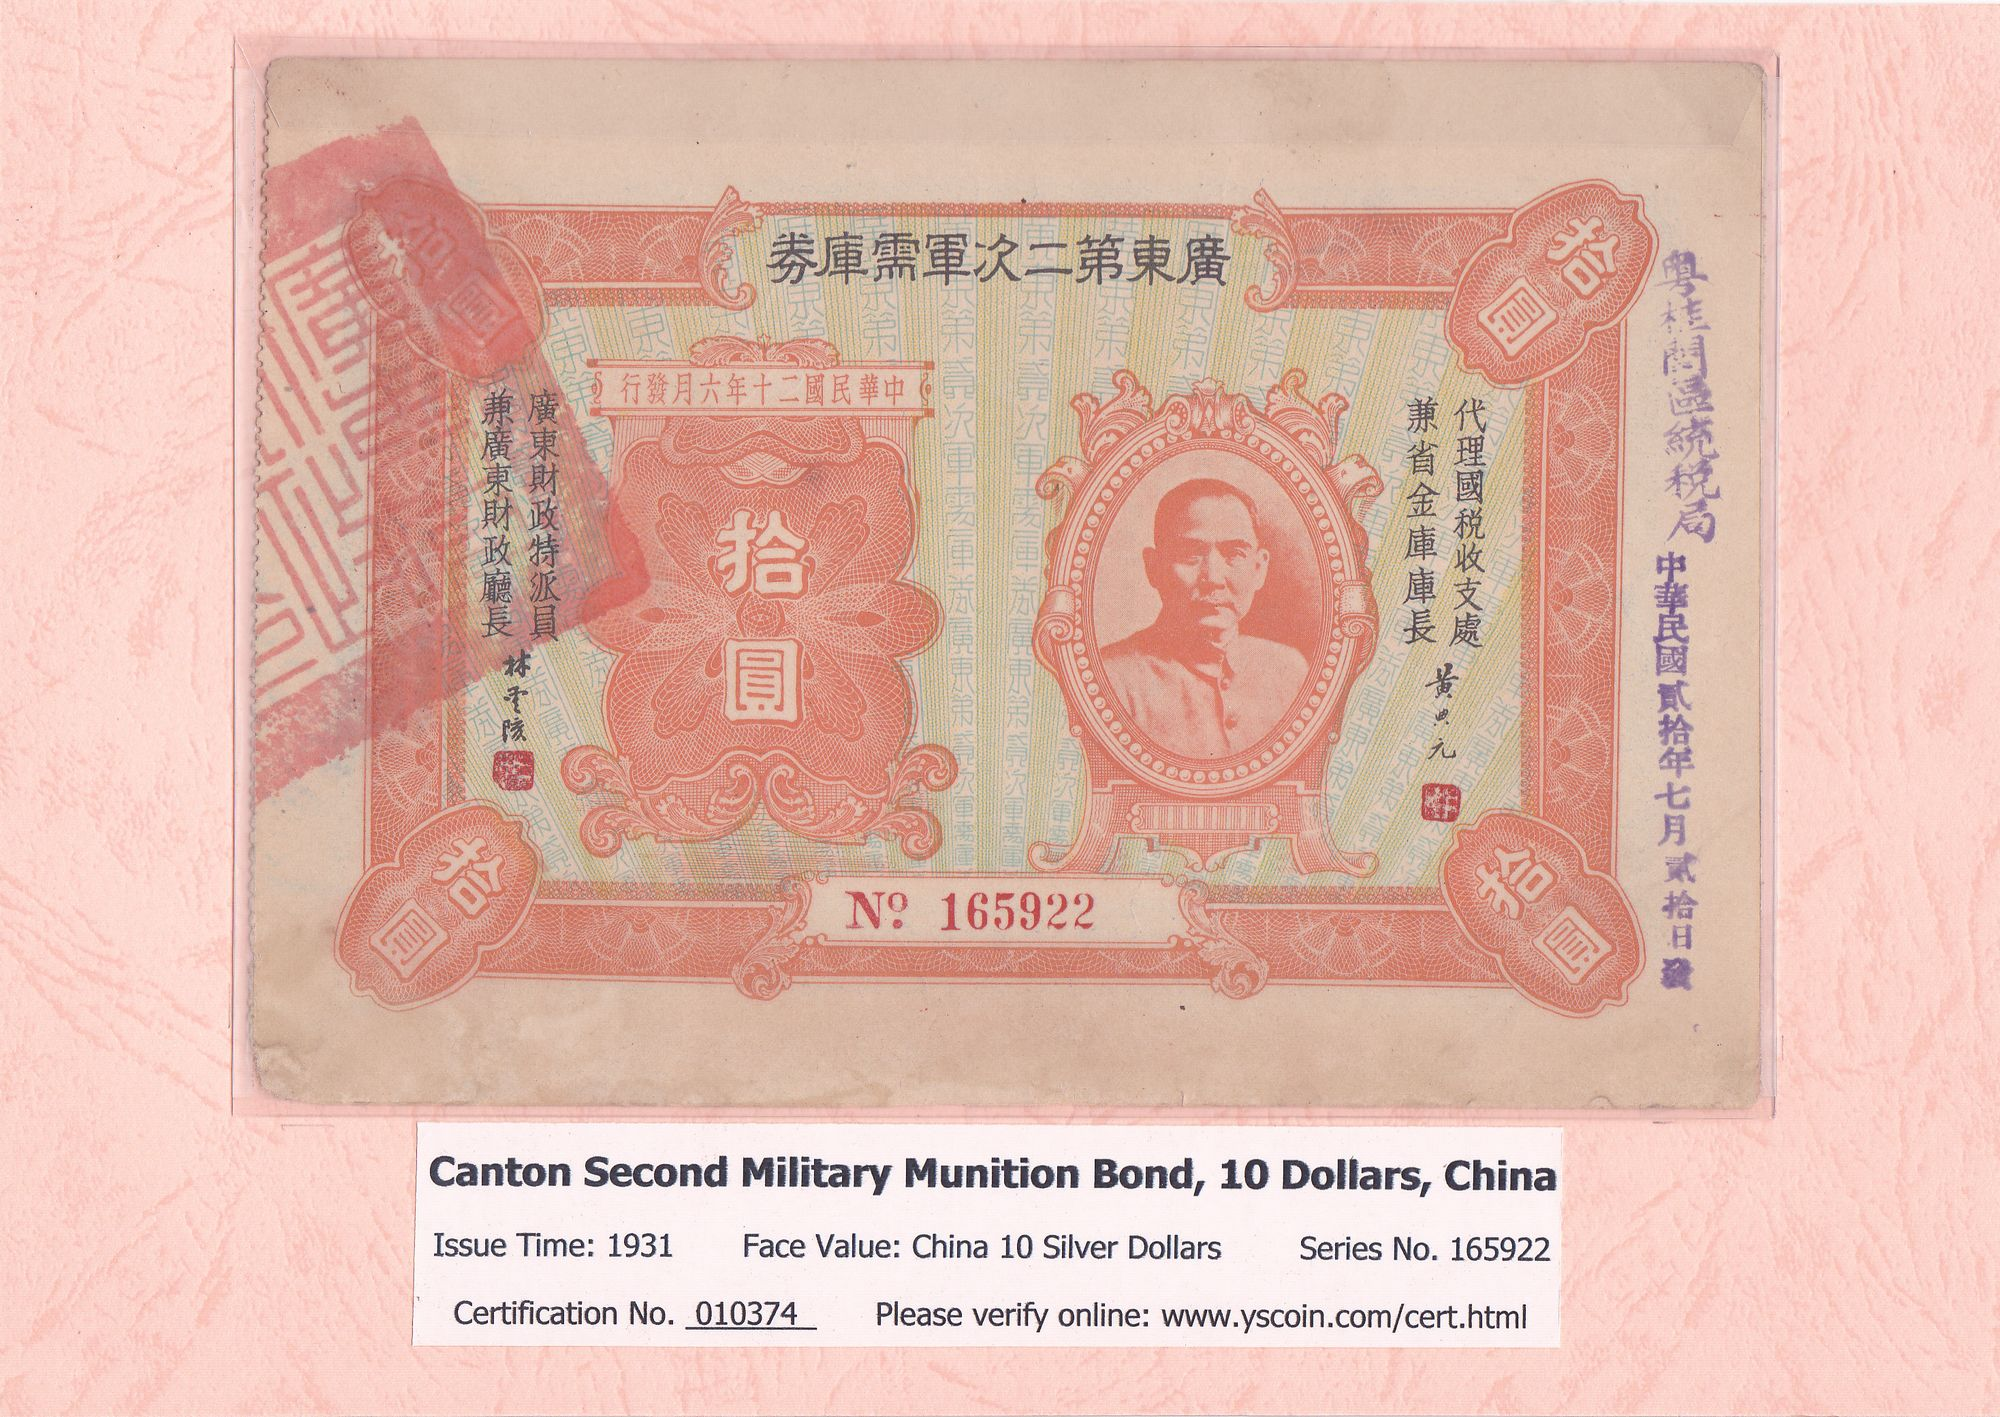 010374, Canton Second Military Munition Bond, 10 Dollars, China